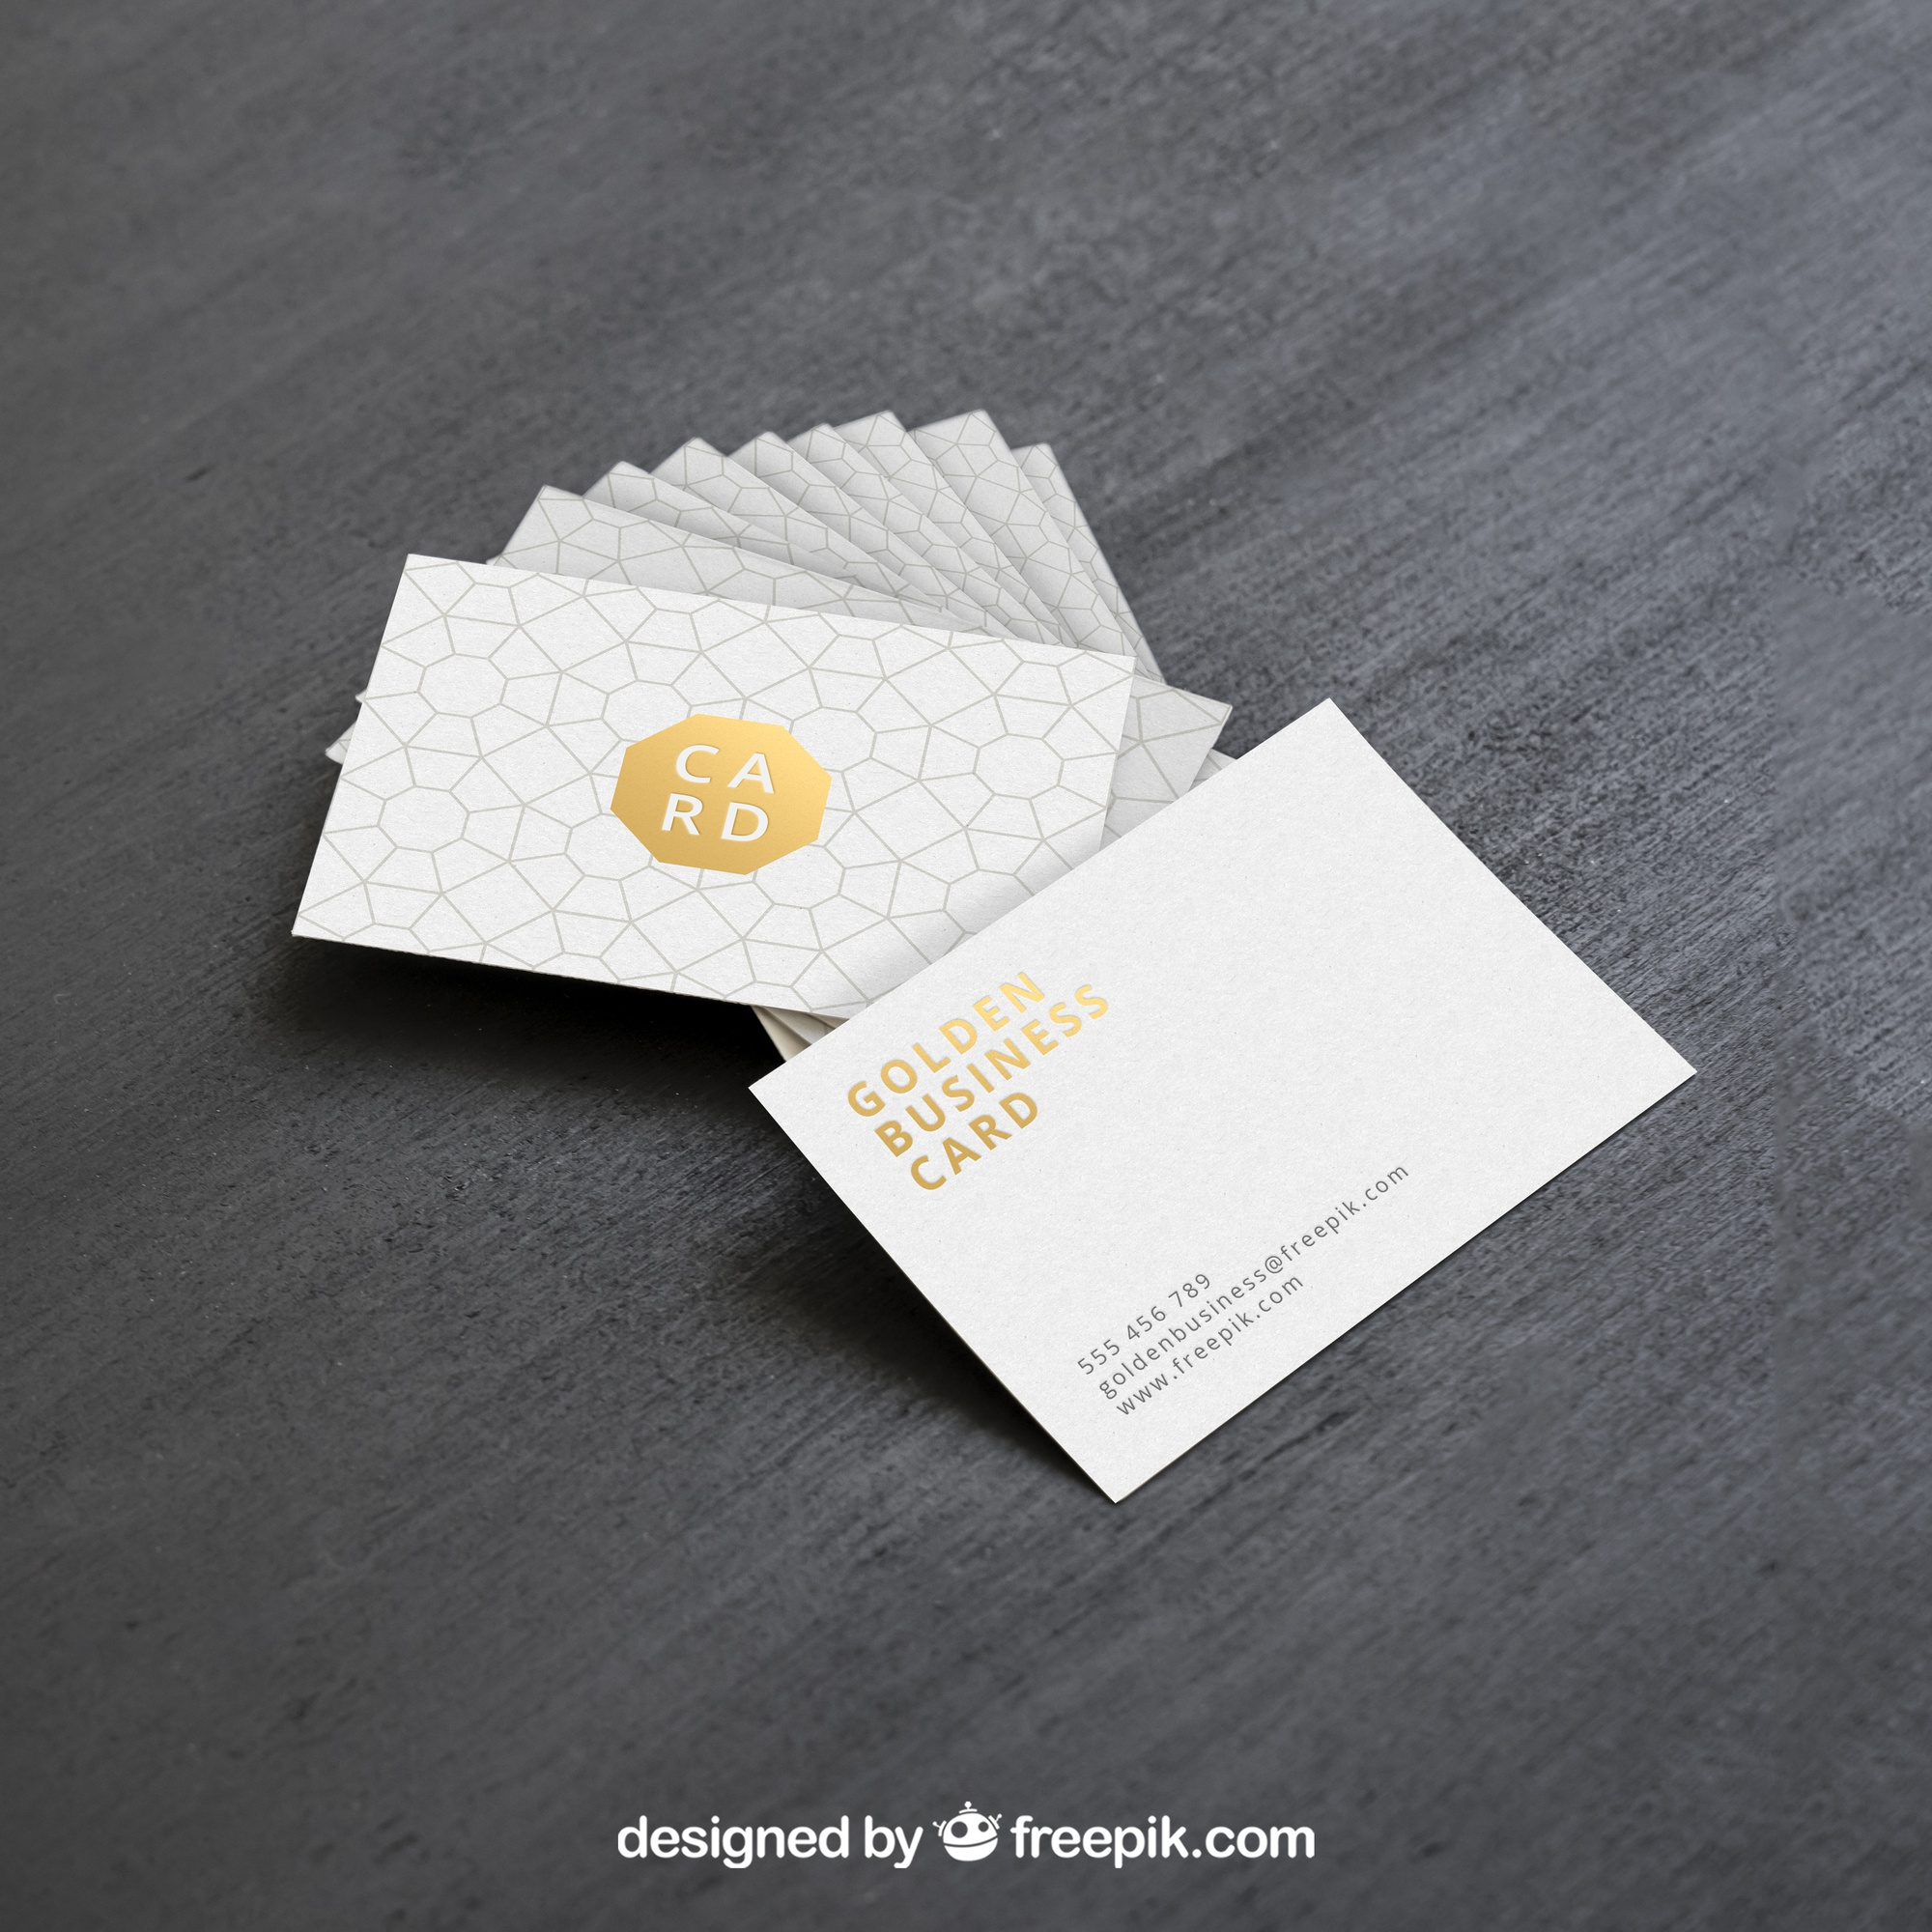 Cards psd 2600 free psd files golden business card mock up flashek Image collections